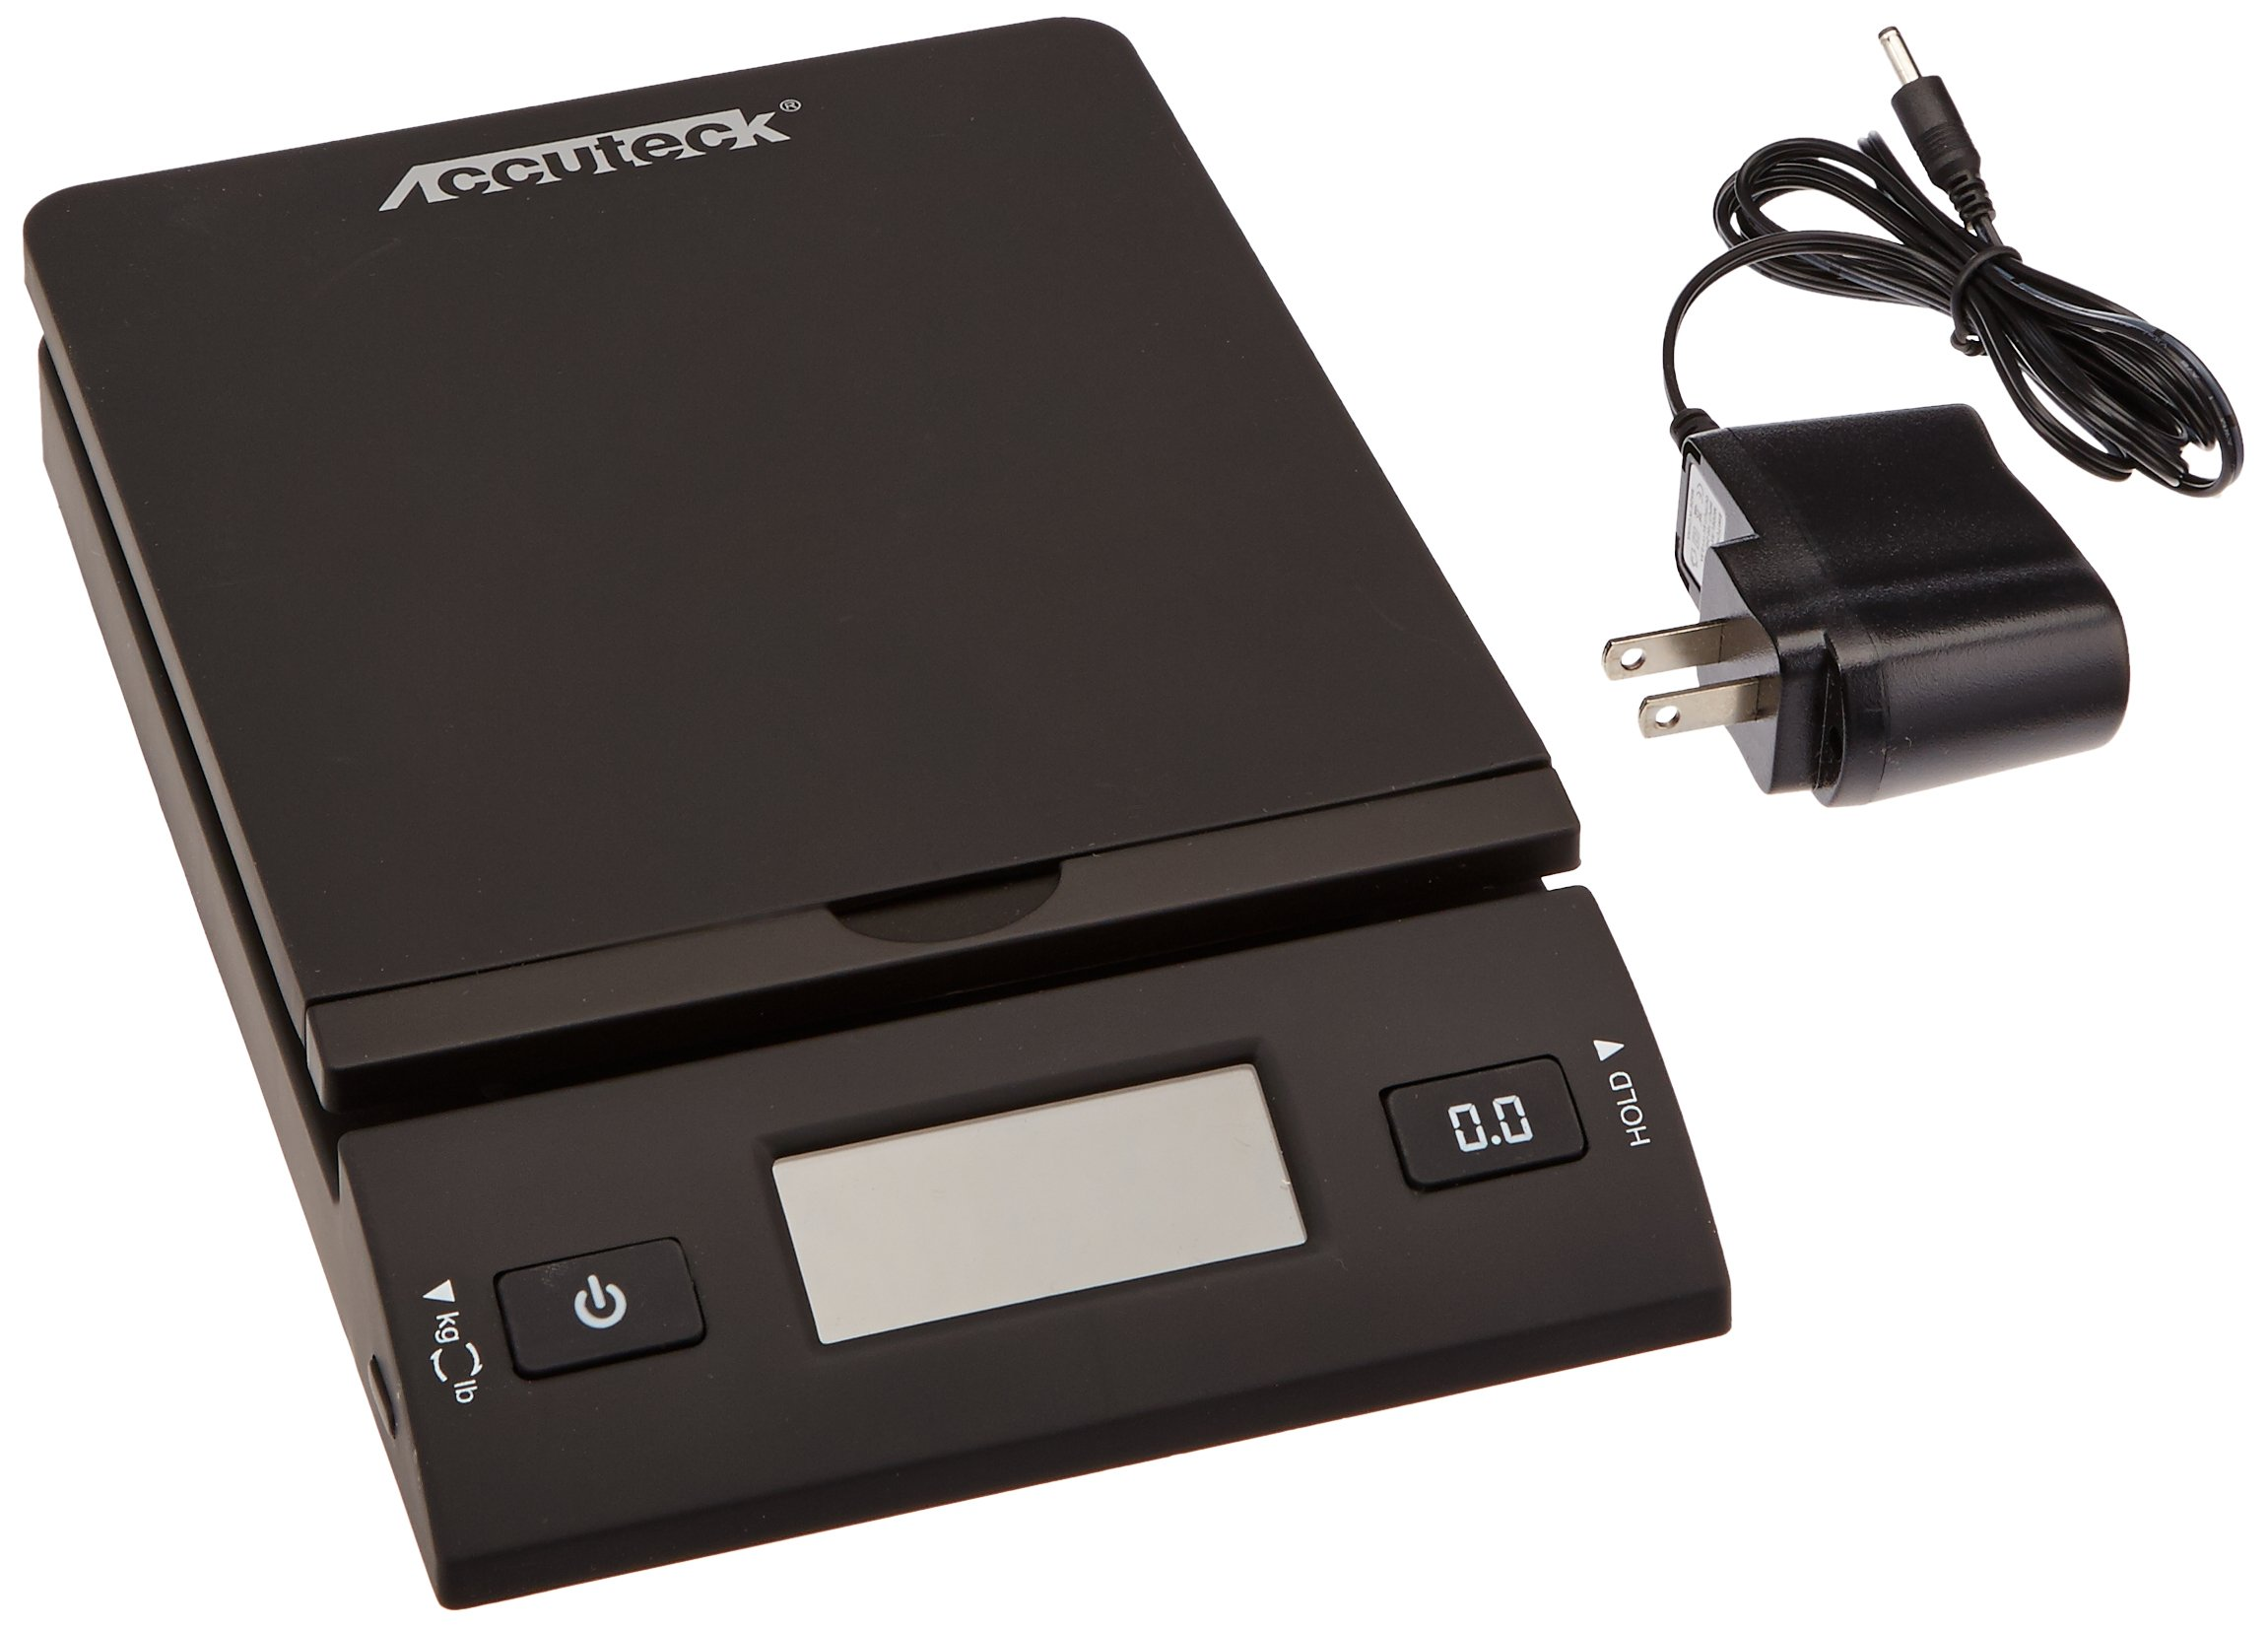 Accuteck 50 lb All-In-One Black Digital Shipping Postal Scale with Adapter (W-8250-50B) by ACCUTECK